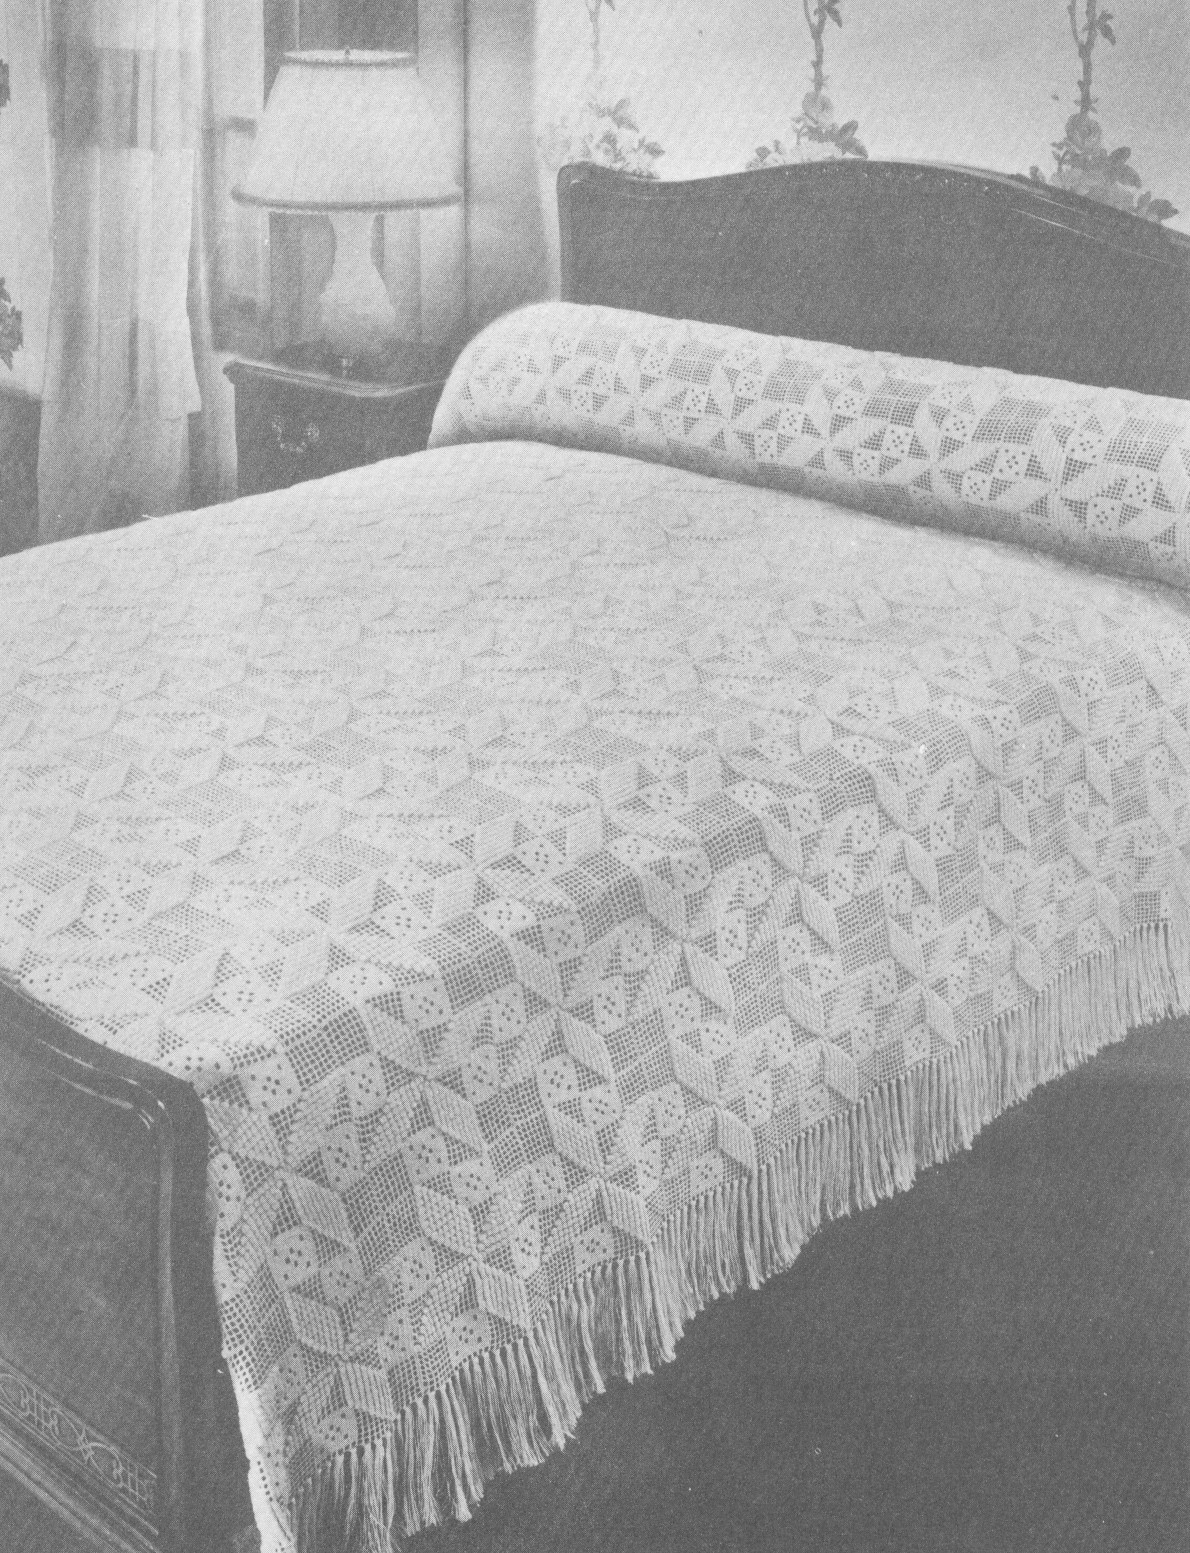 Best Of Free Crochet Pattern Bedspread Popcorn Crochet and Free Crochet Bedspread Patterns Of Unique 48 Photos Free Crochet Bedspread Patterns